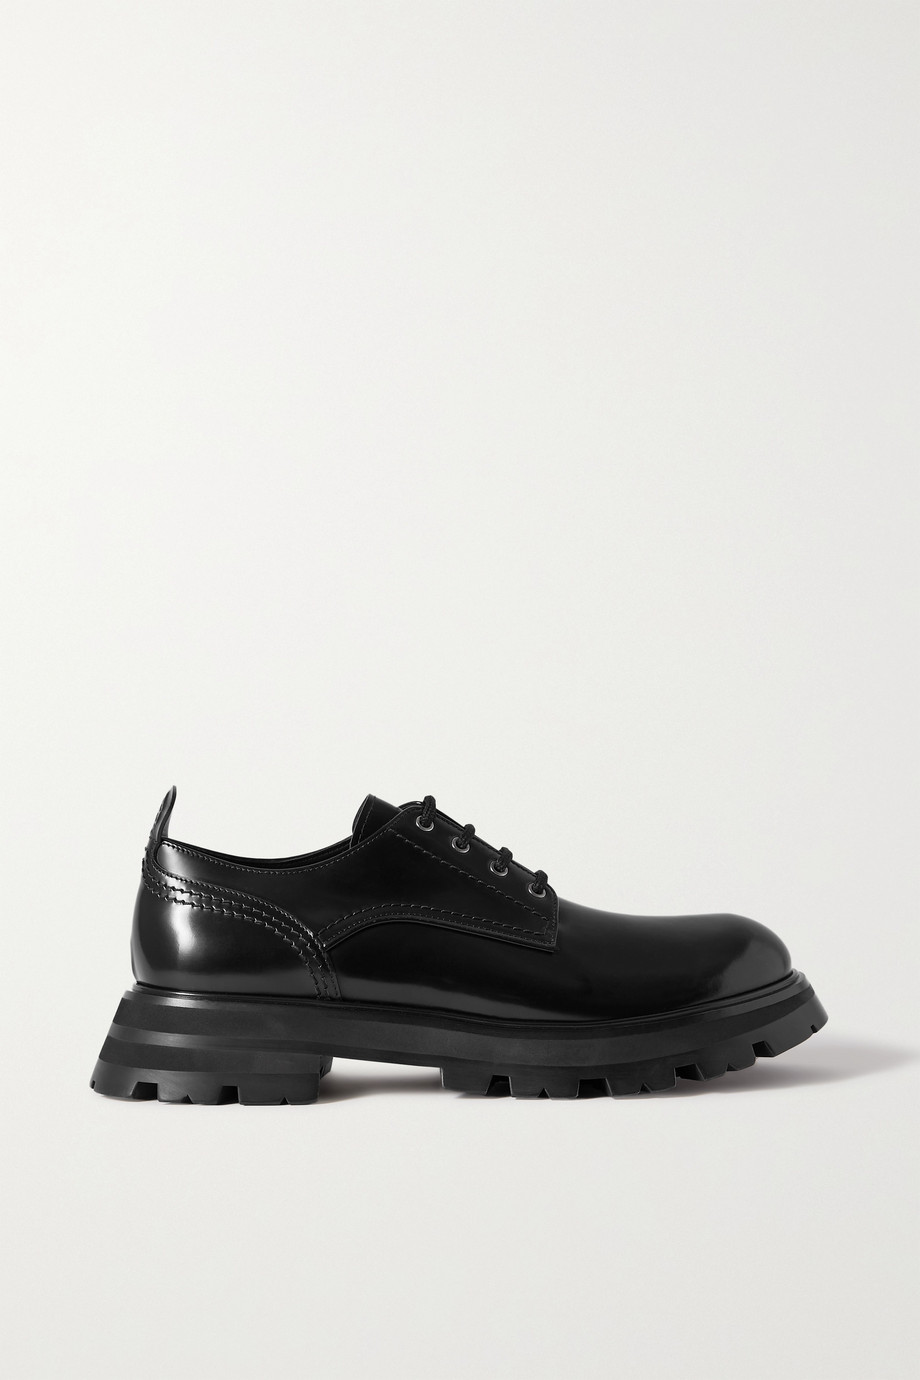 Alexander McQueen Glossed-leather exaggerated-sole brogues